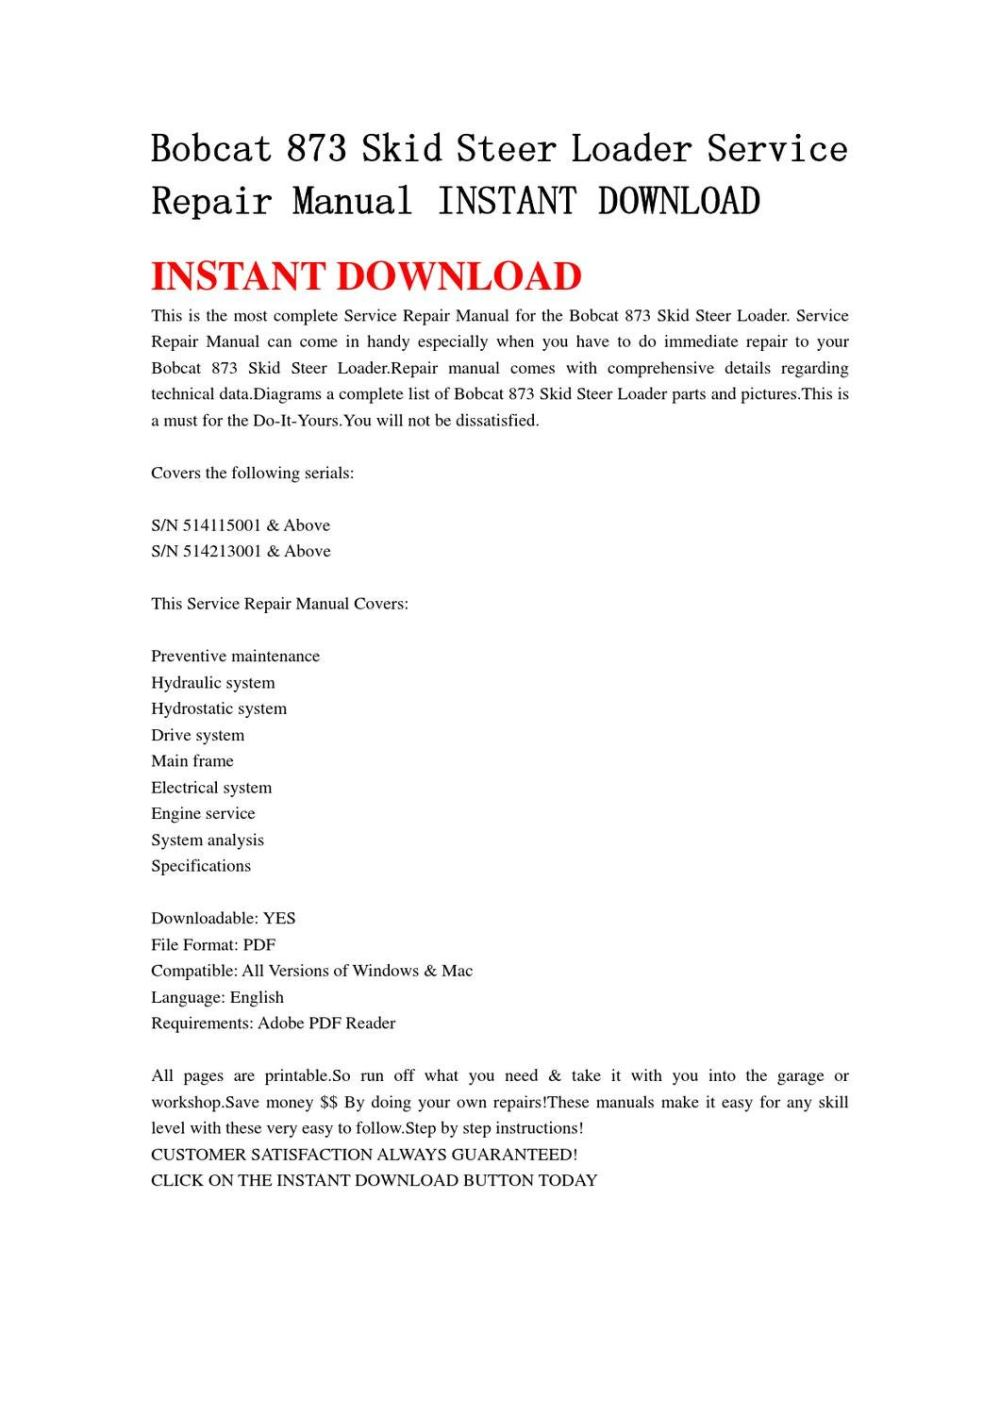 medium resolution of bobcat 873 skid steer loader service repair manual instant download by chen wei issuu